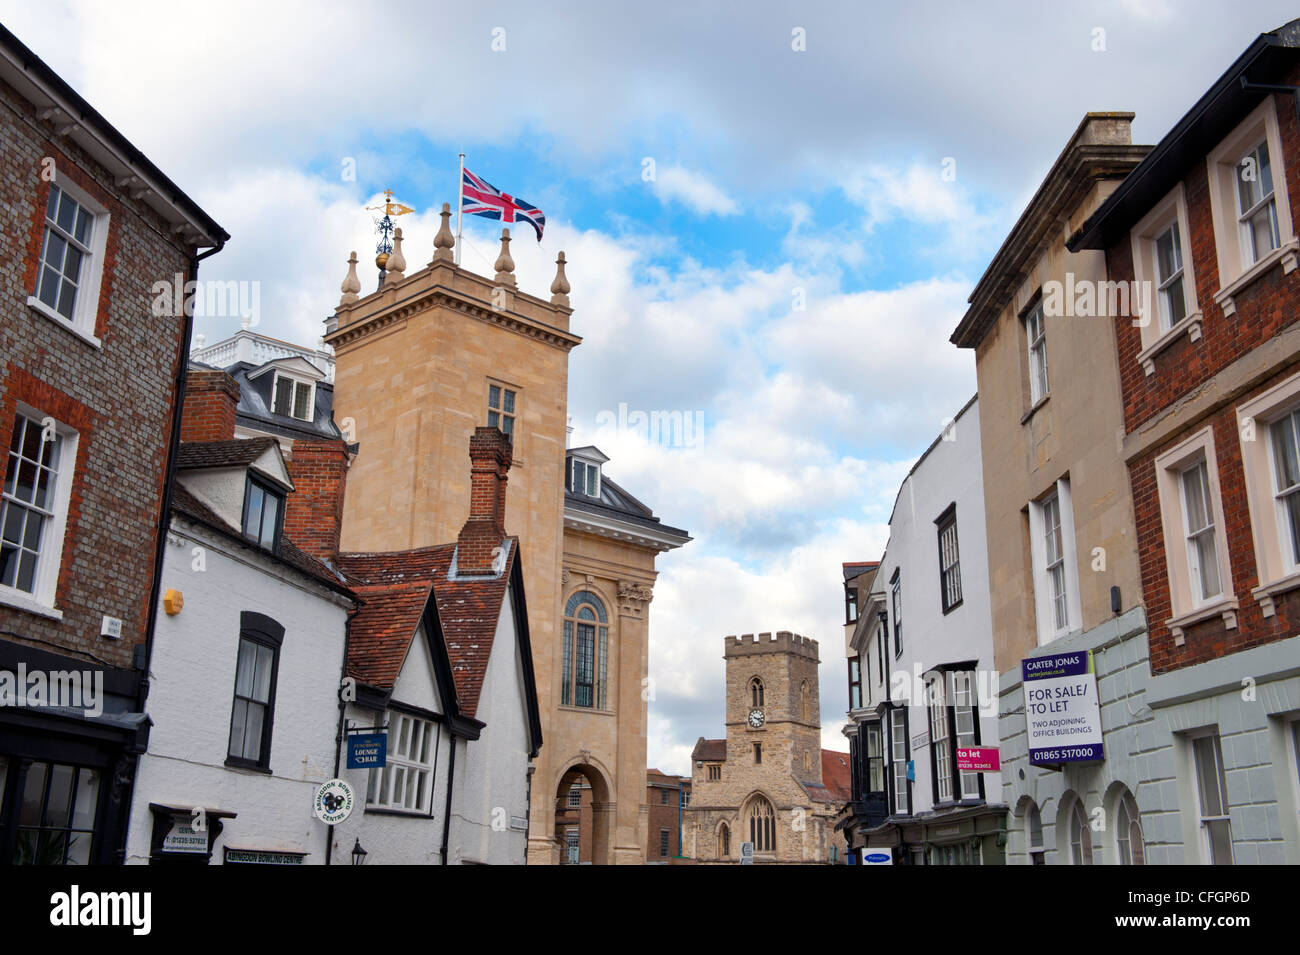 Abingdon, Oxfordshire, showing the old County Hall. - Stock Image